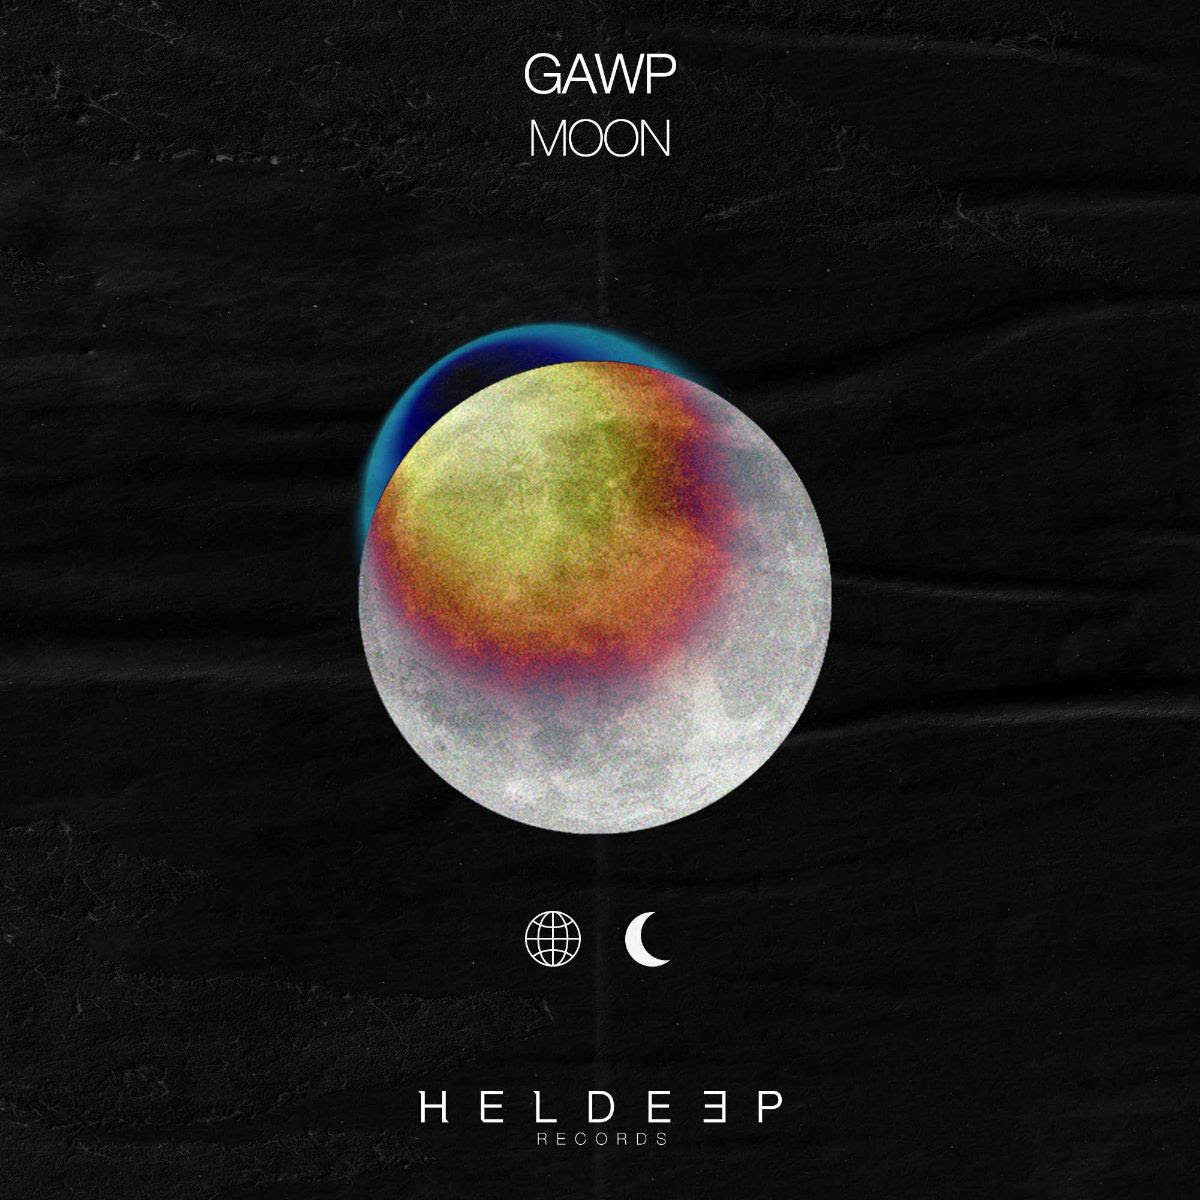 GAWP releases extraterrestrial new track 'Moon' on Heldeep Records ...